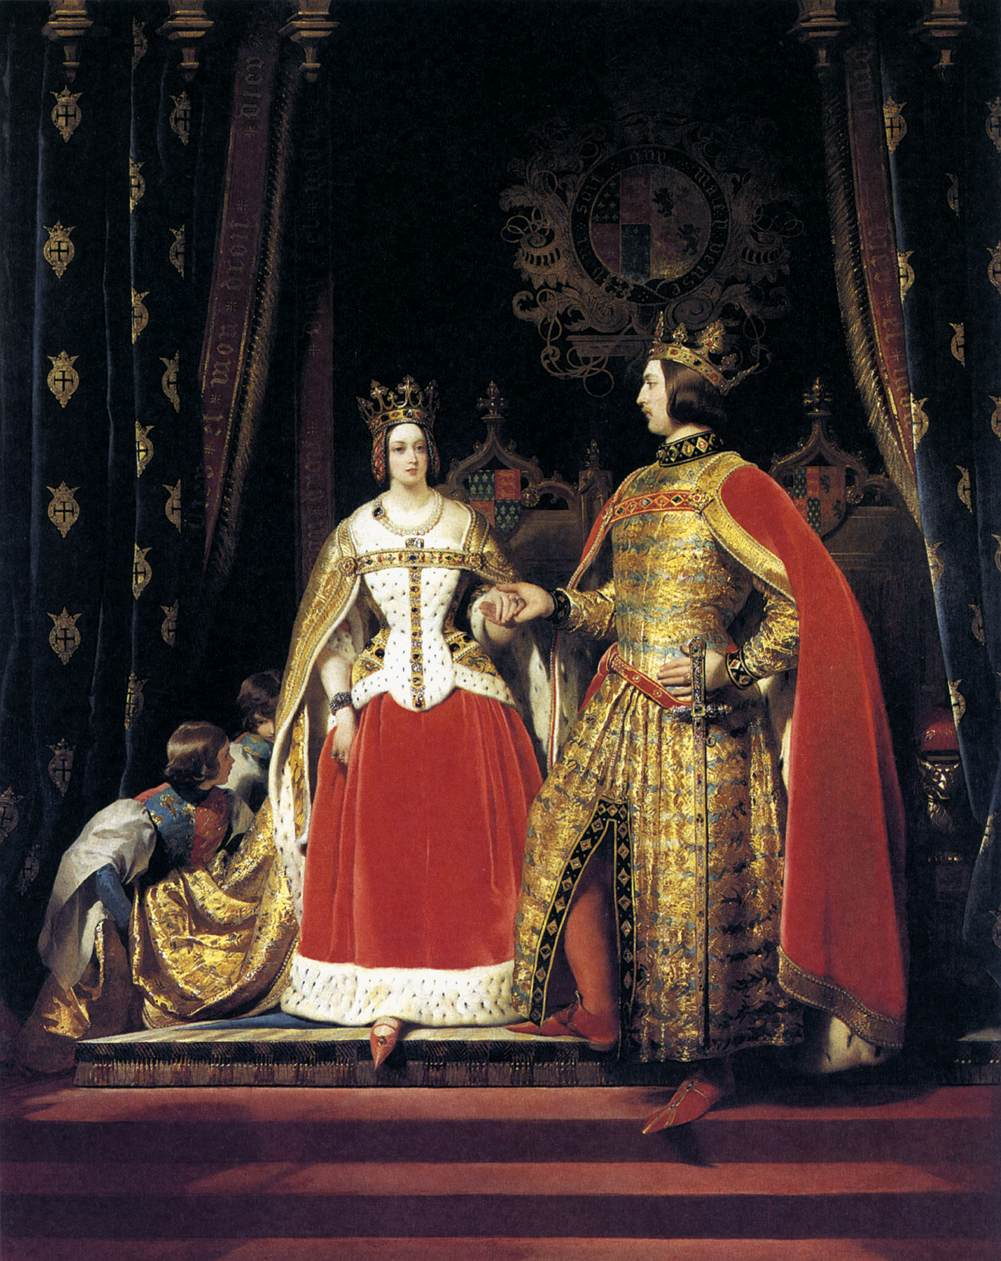 Queen Victoria and Prince Albert at the Bal Costumé of 12 May 1842 by Landseer